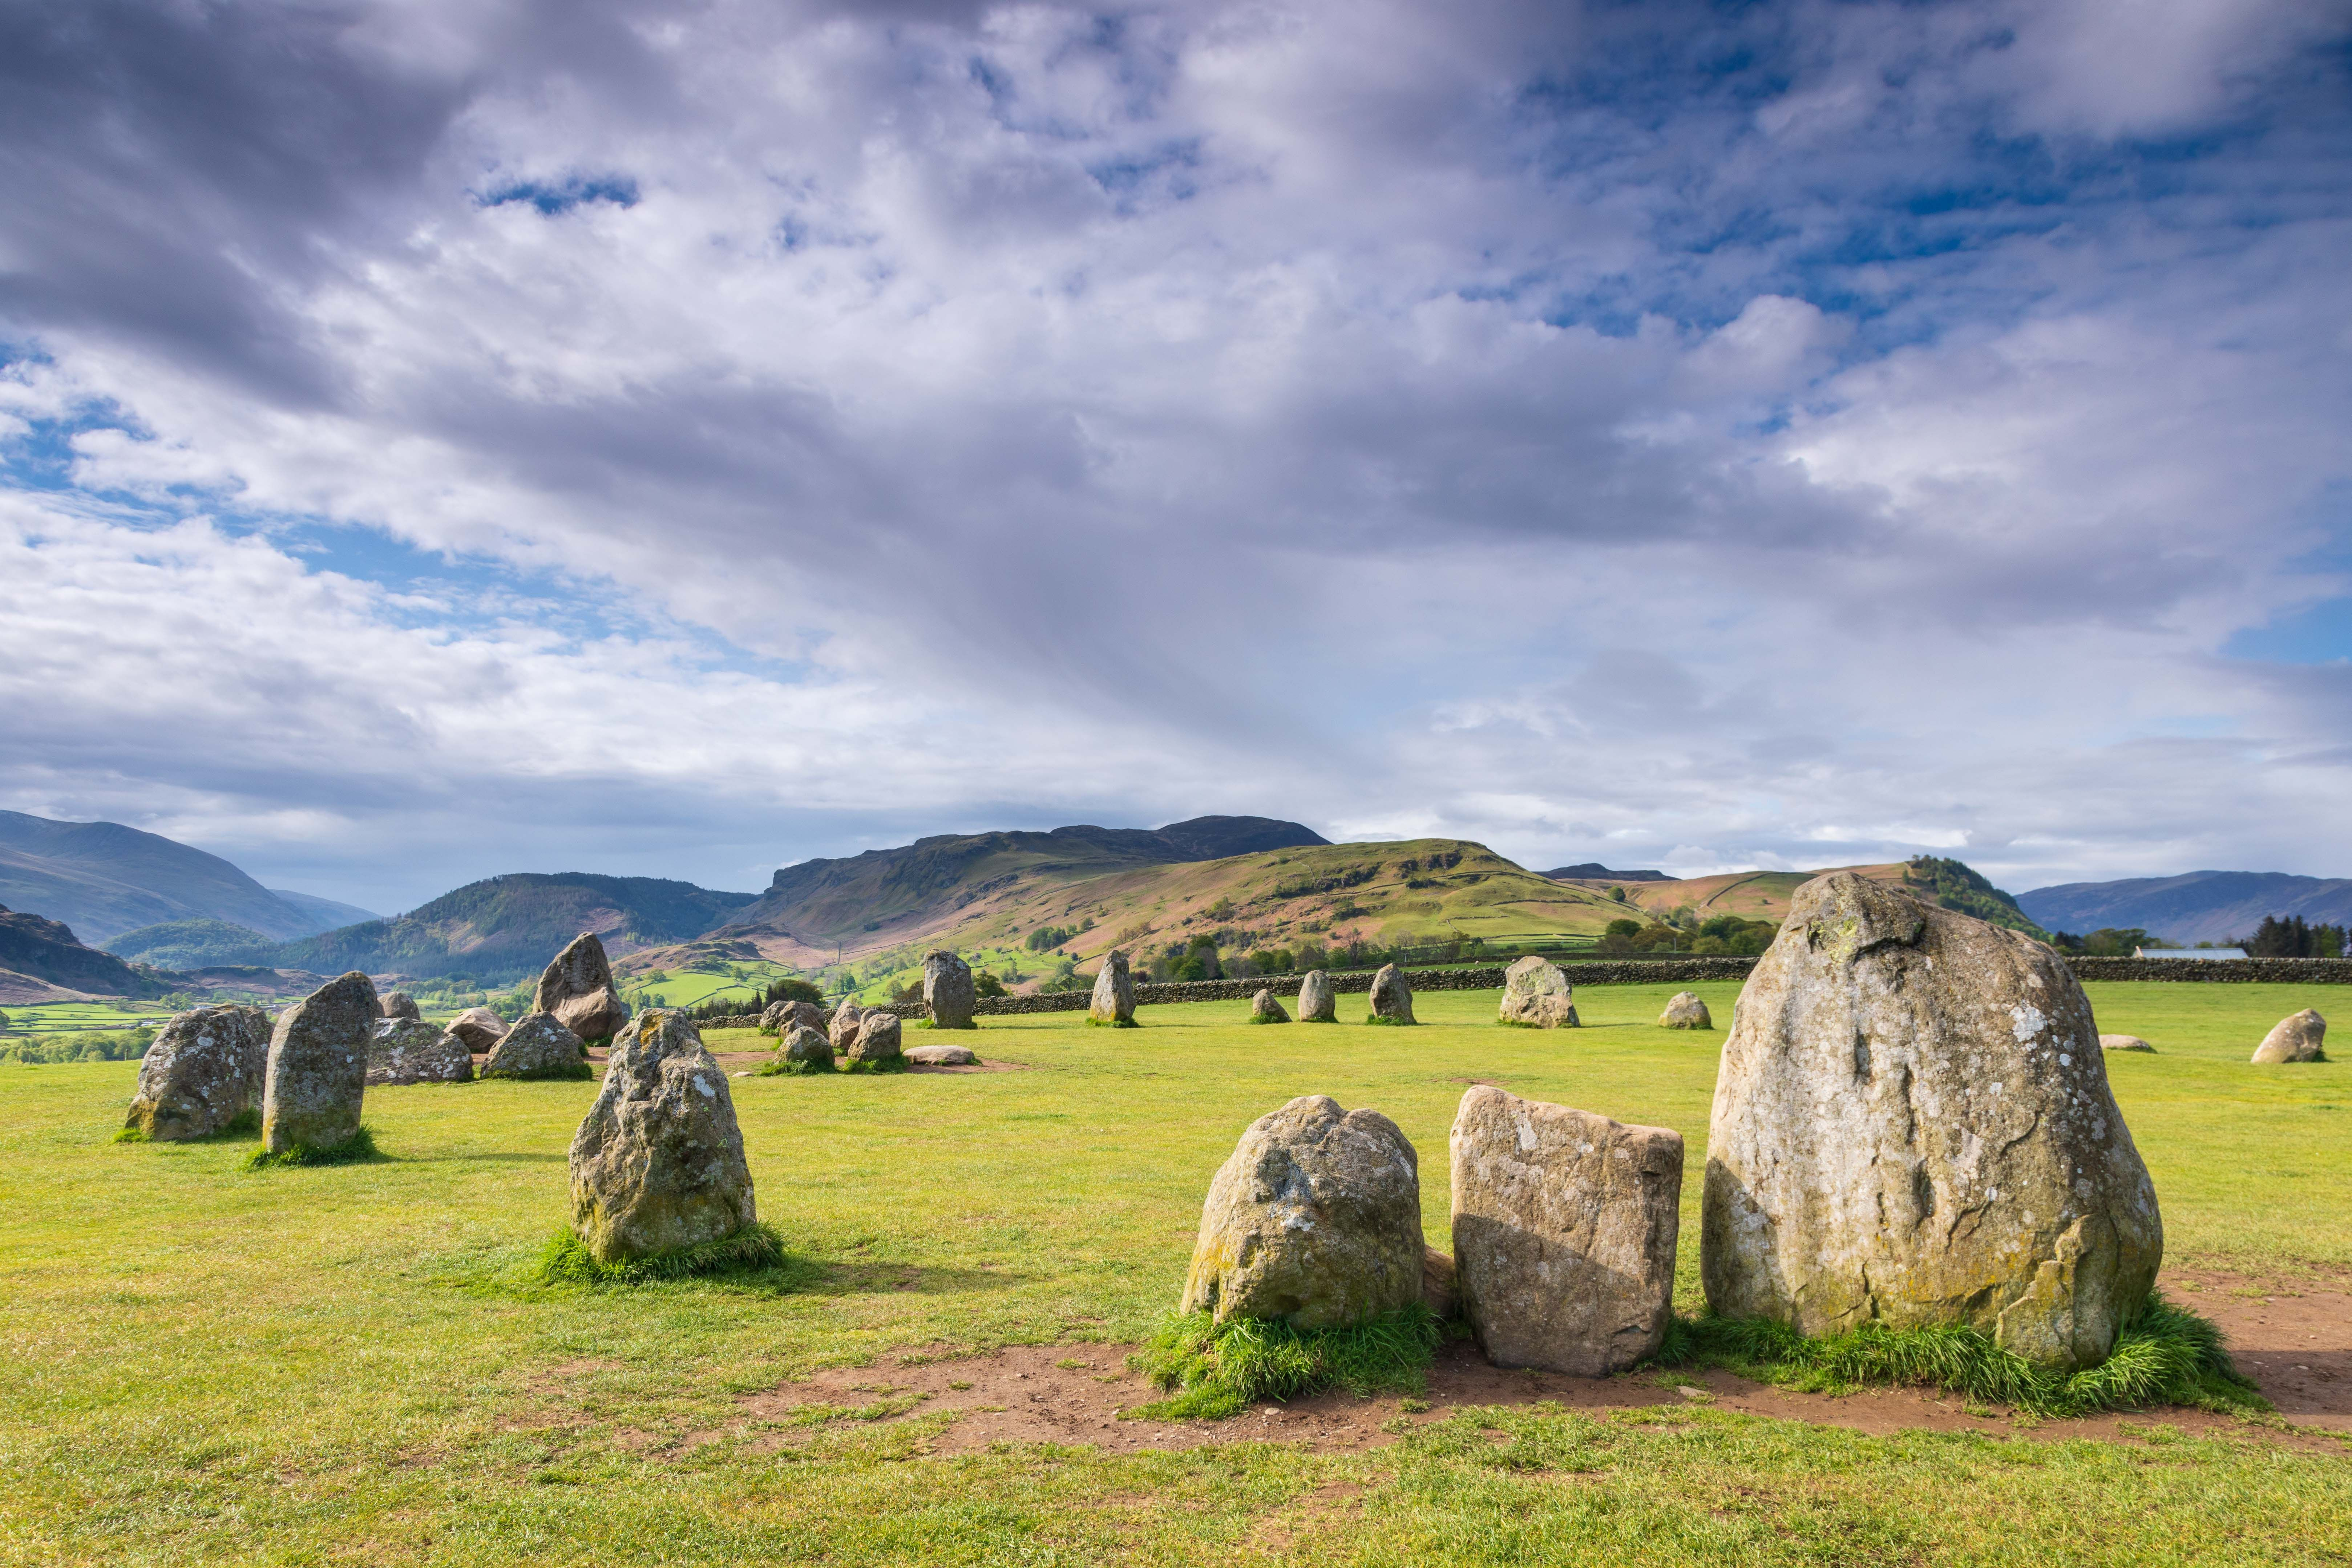 'Castlerigg Stone Circle, Keswick, Cumbria' Art Print by